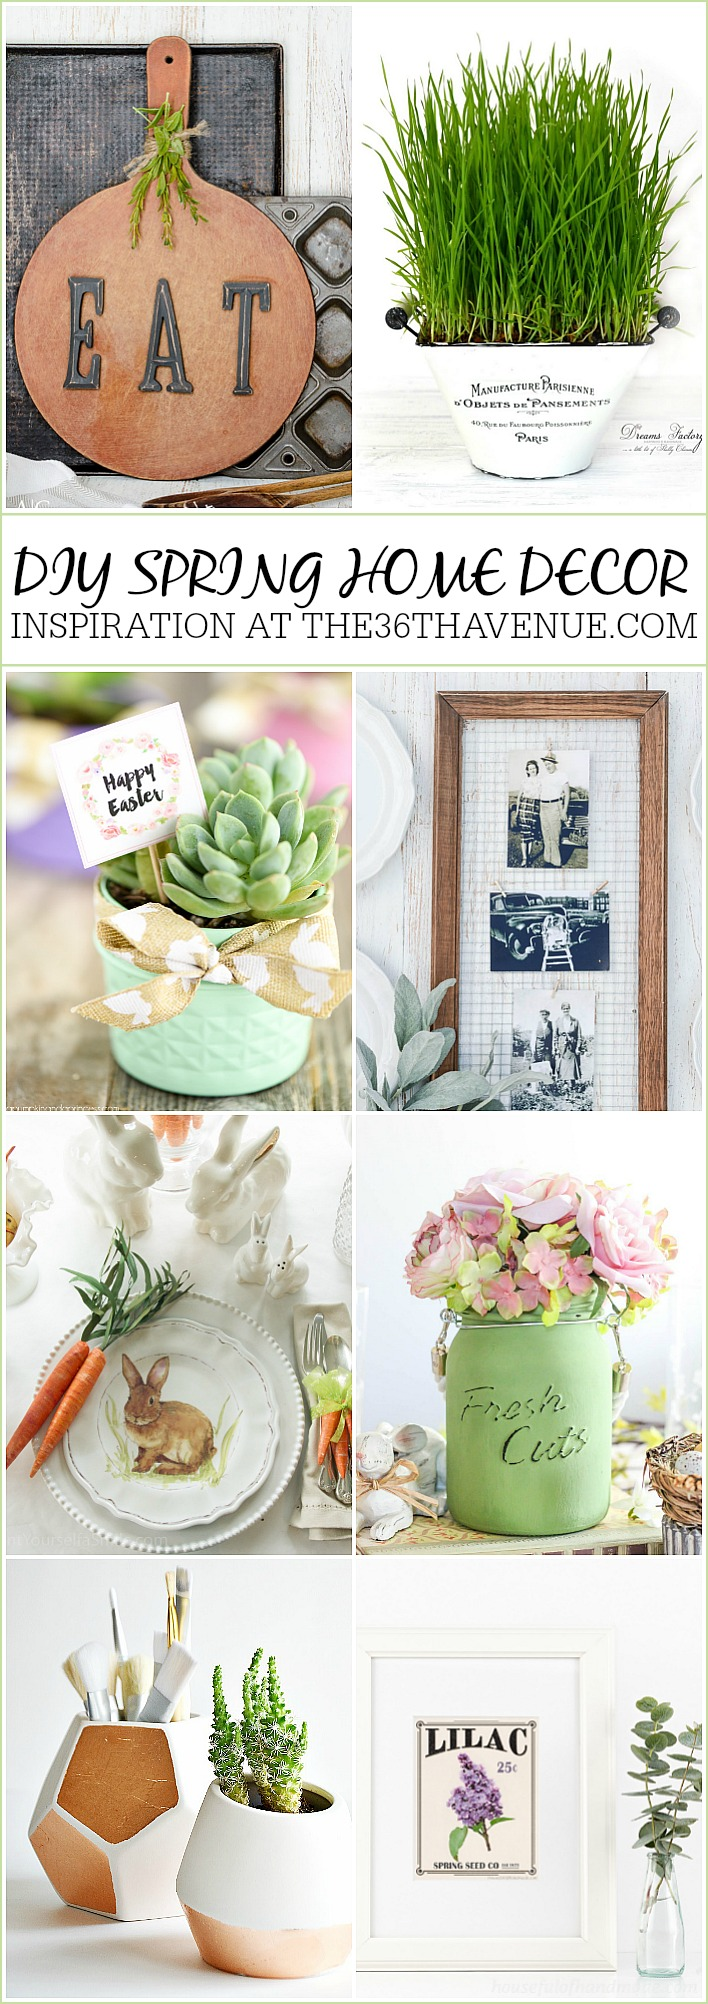 Home Decor Spring Ideas The 36th Avenue